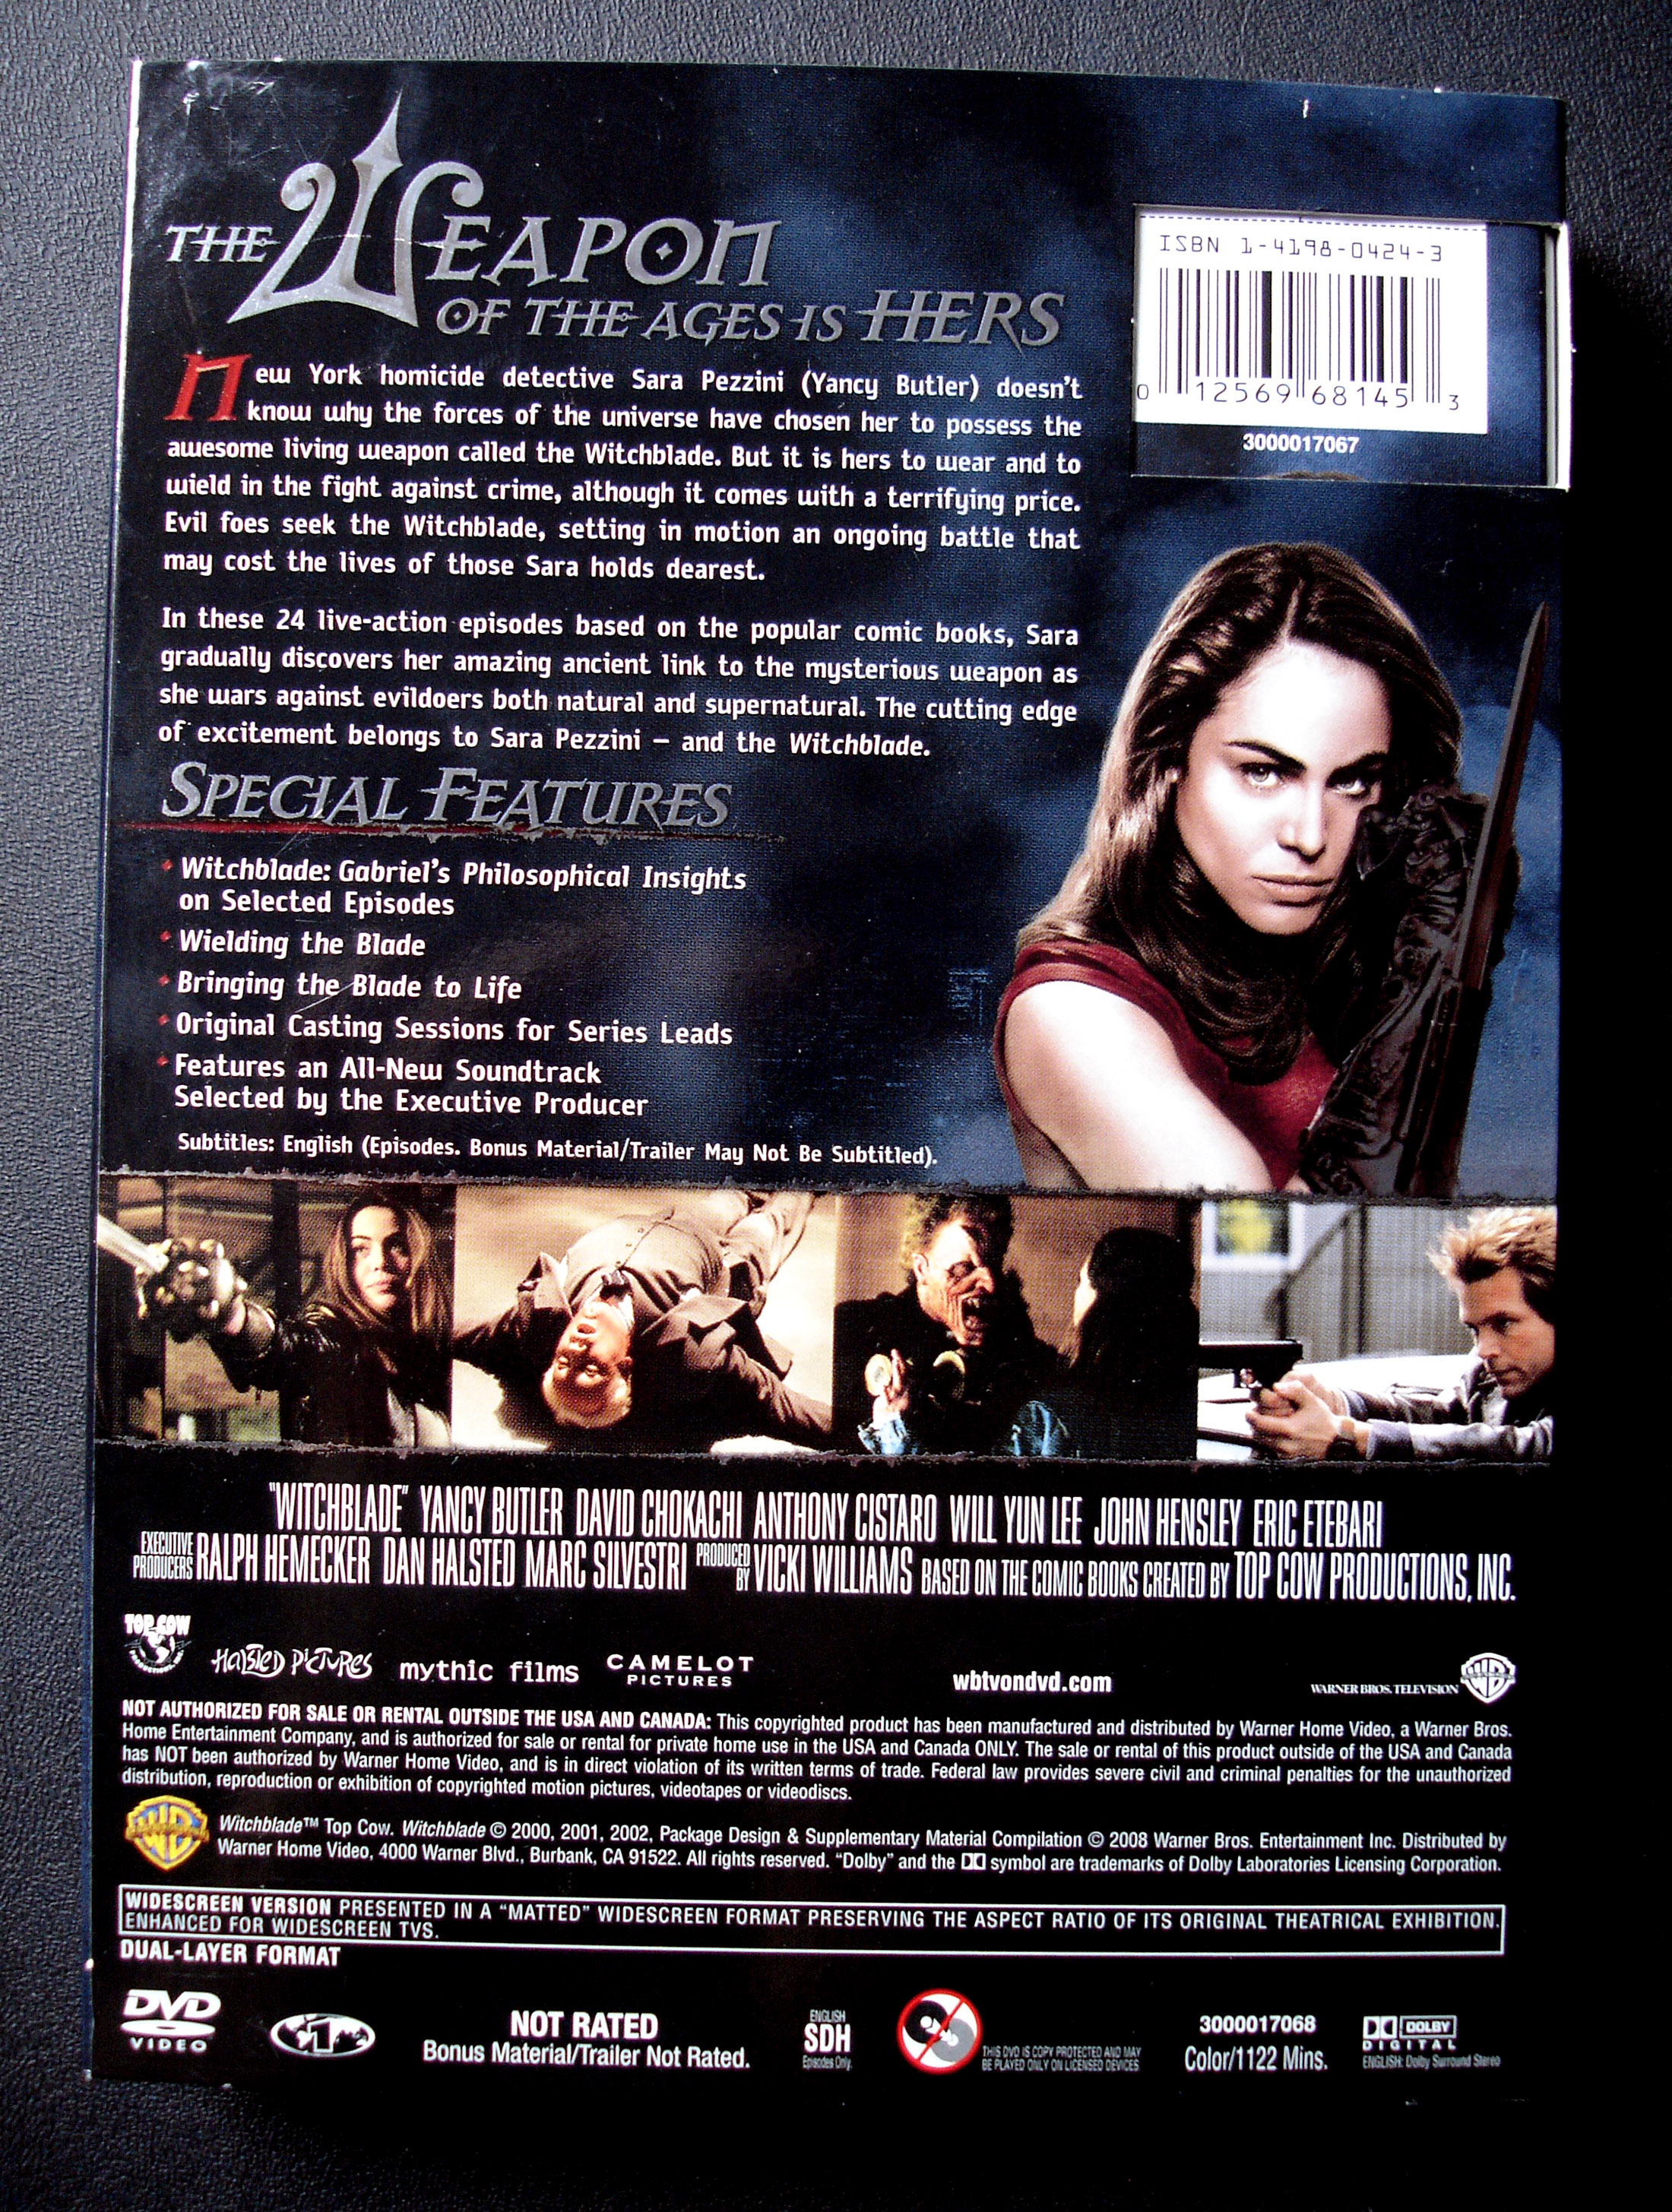 Yancy butler pictures to pin on pinterest - Yancy Butler Pictures To Pin On Pinterest 58